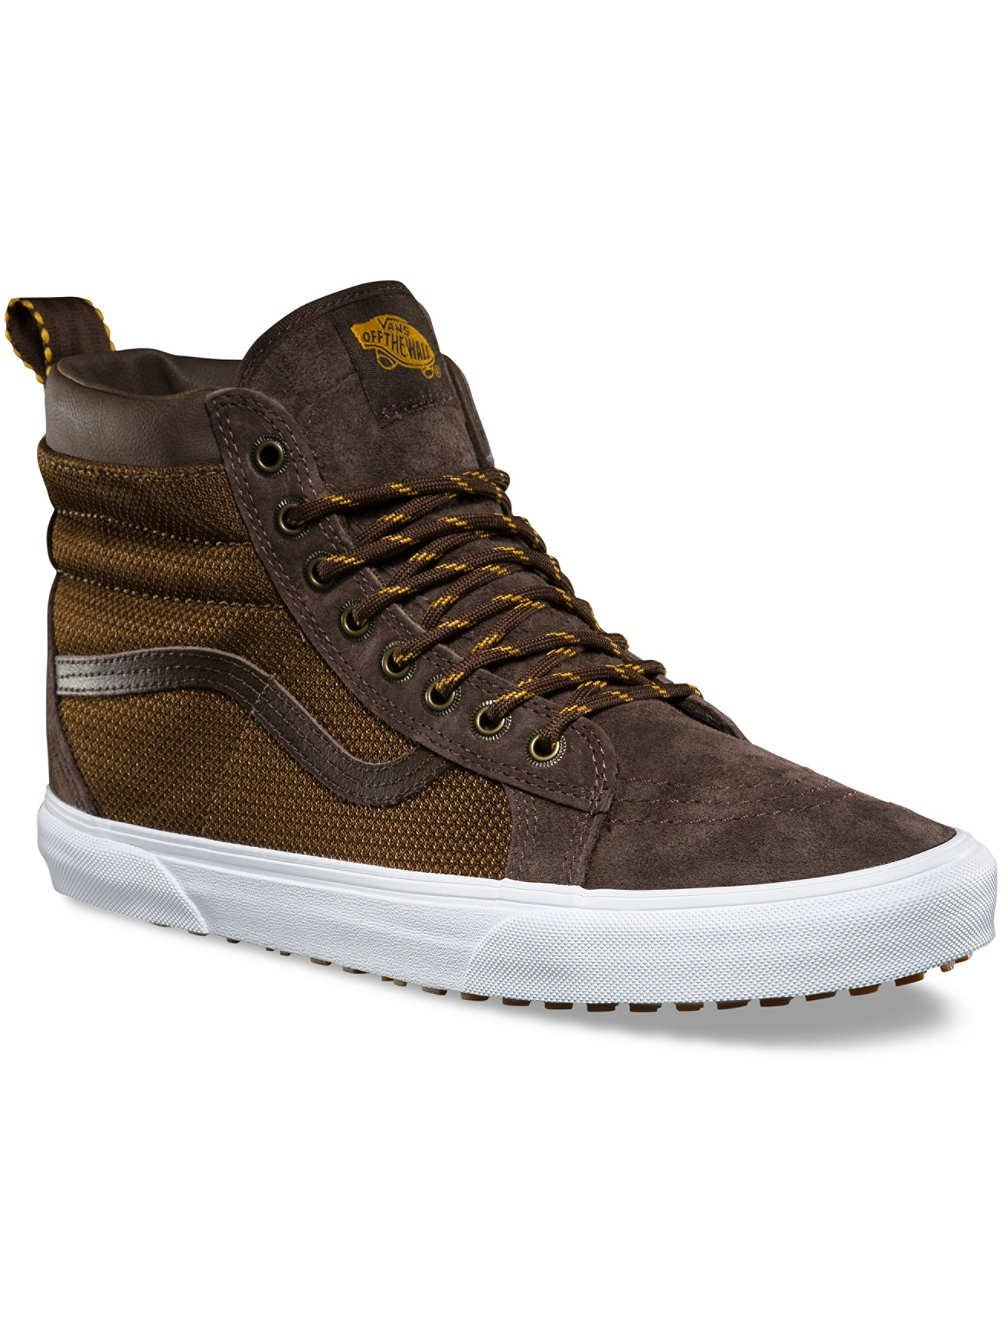 Vans Men's SK8-Hi MTE Trainers, Brown, 10 US